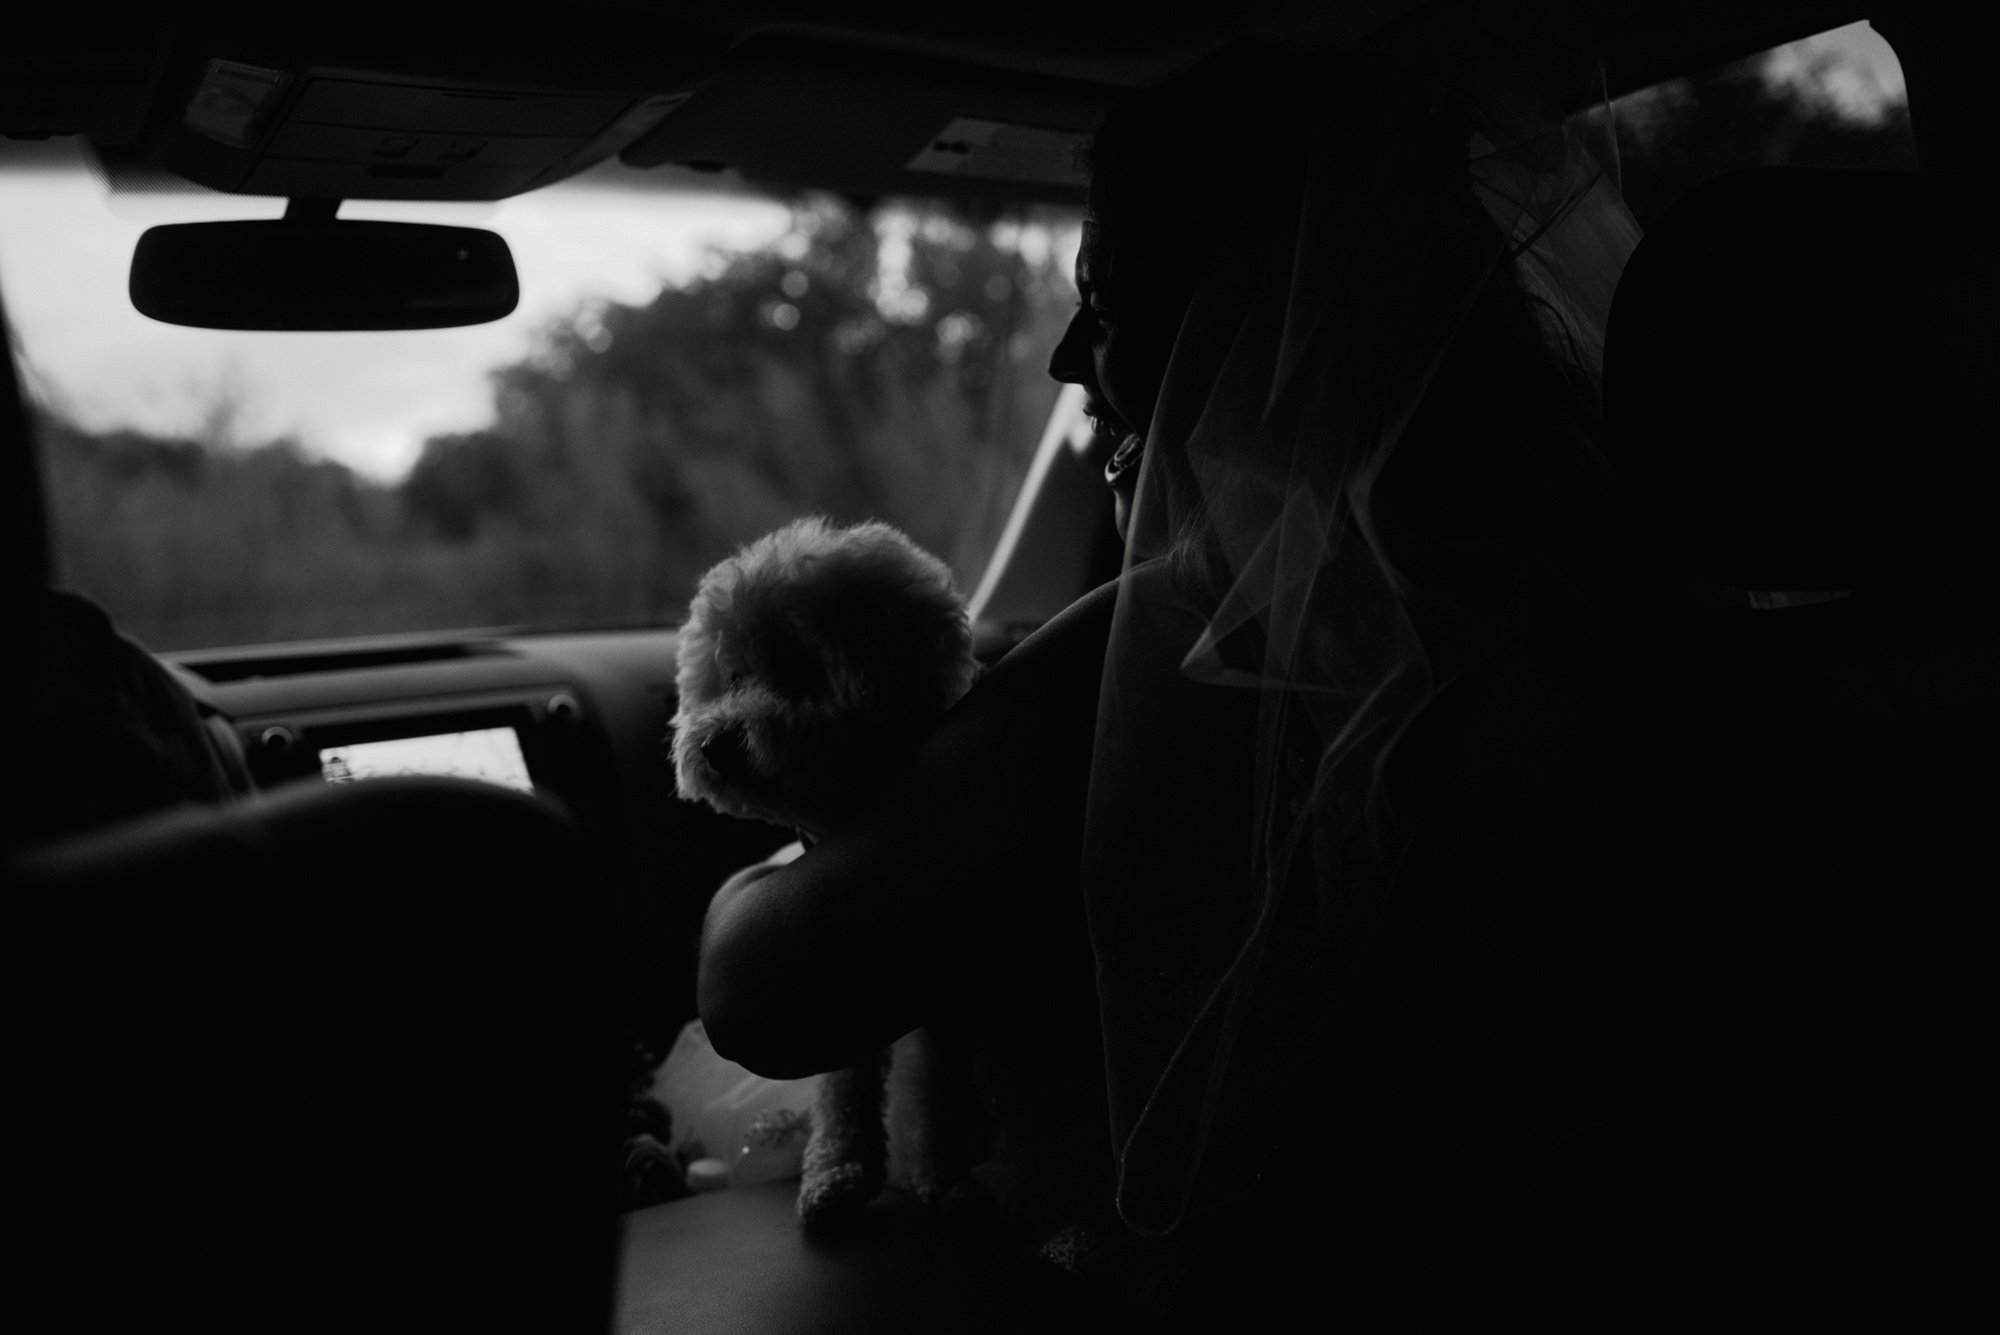 black and white photojournalistic wedding photos, dogs in cars with brides, DIY elopement,